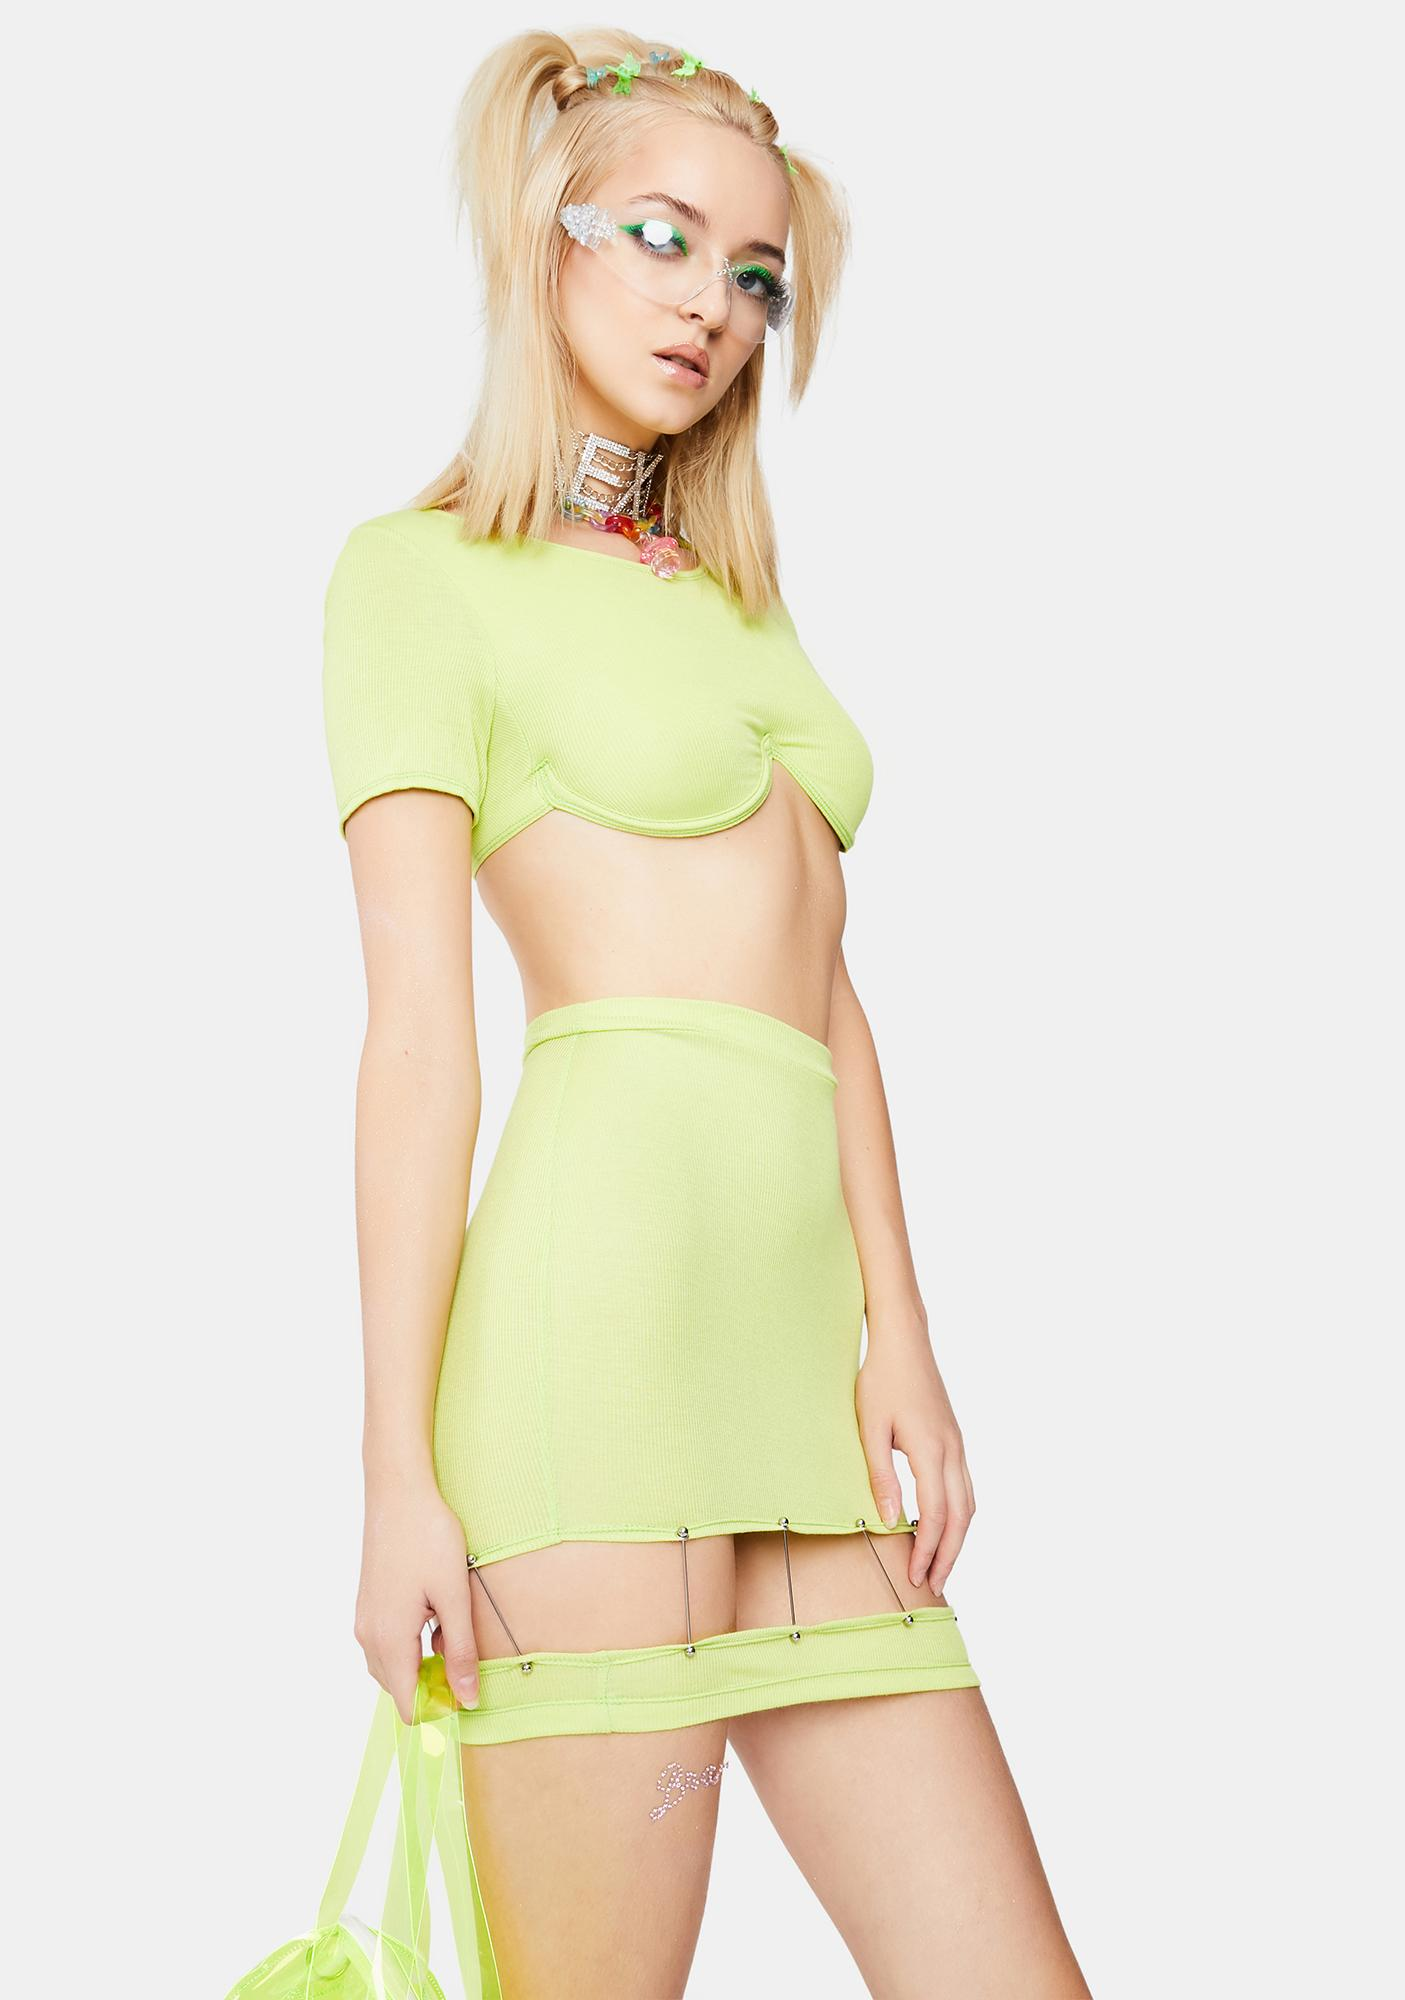 Ivy Berlin Limewire Cut-Out Skirt